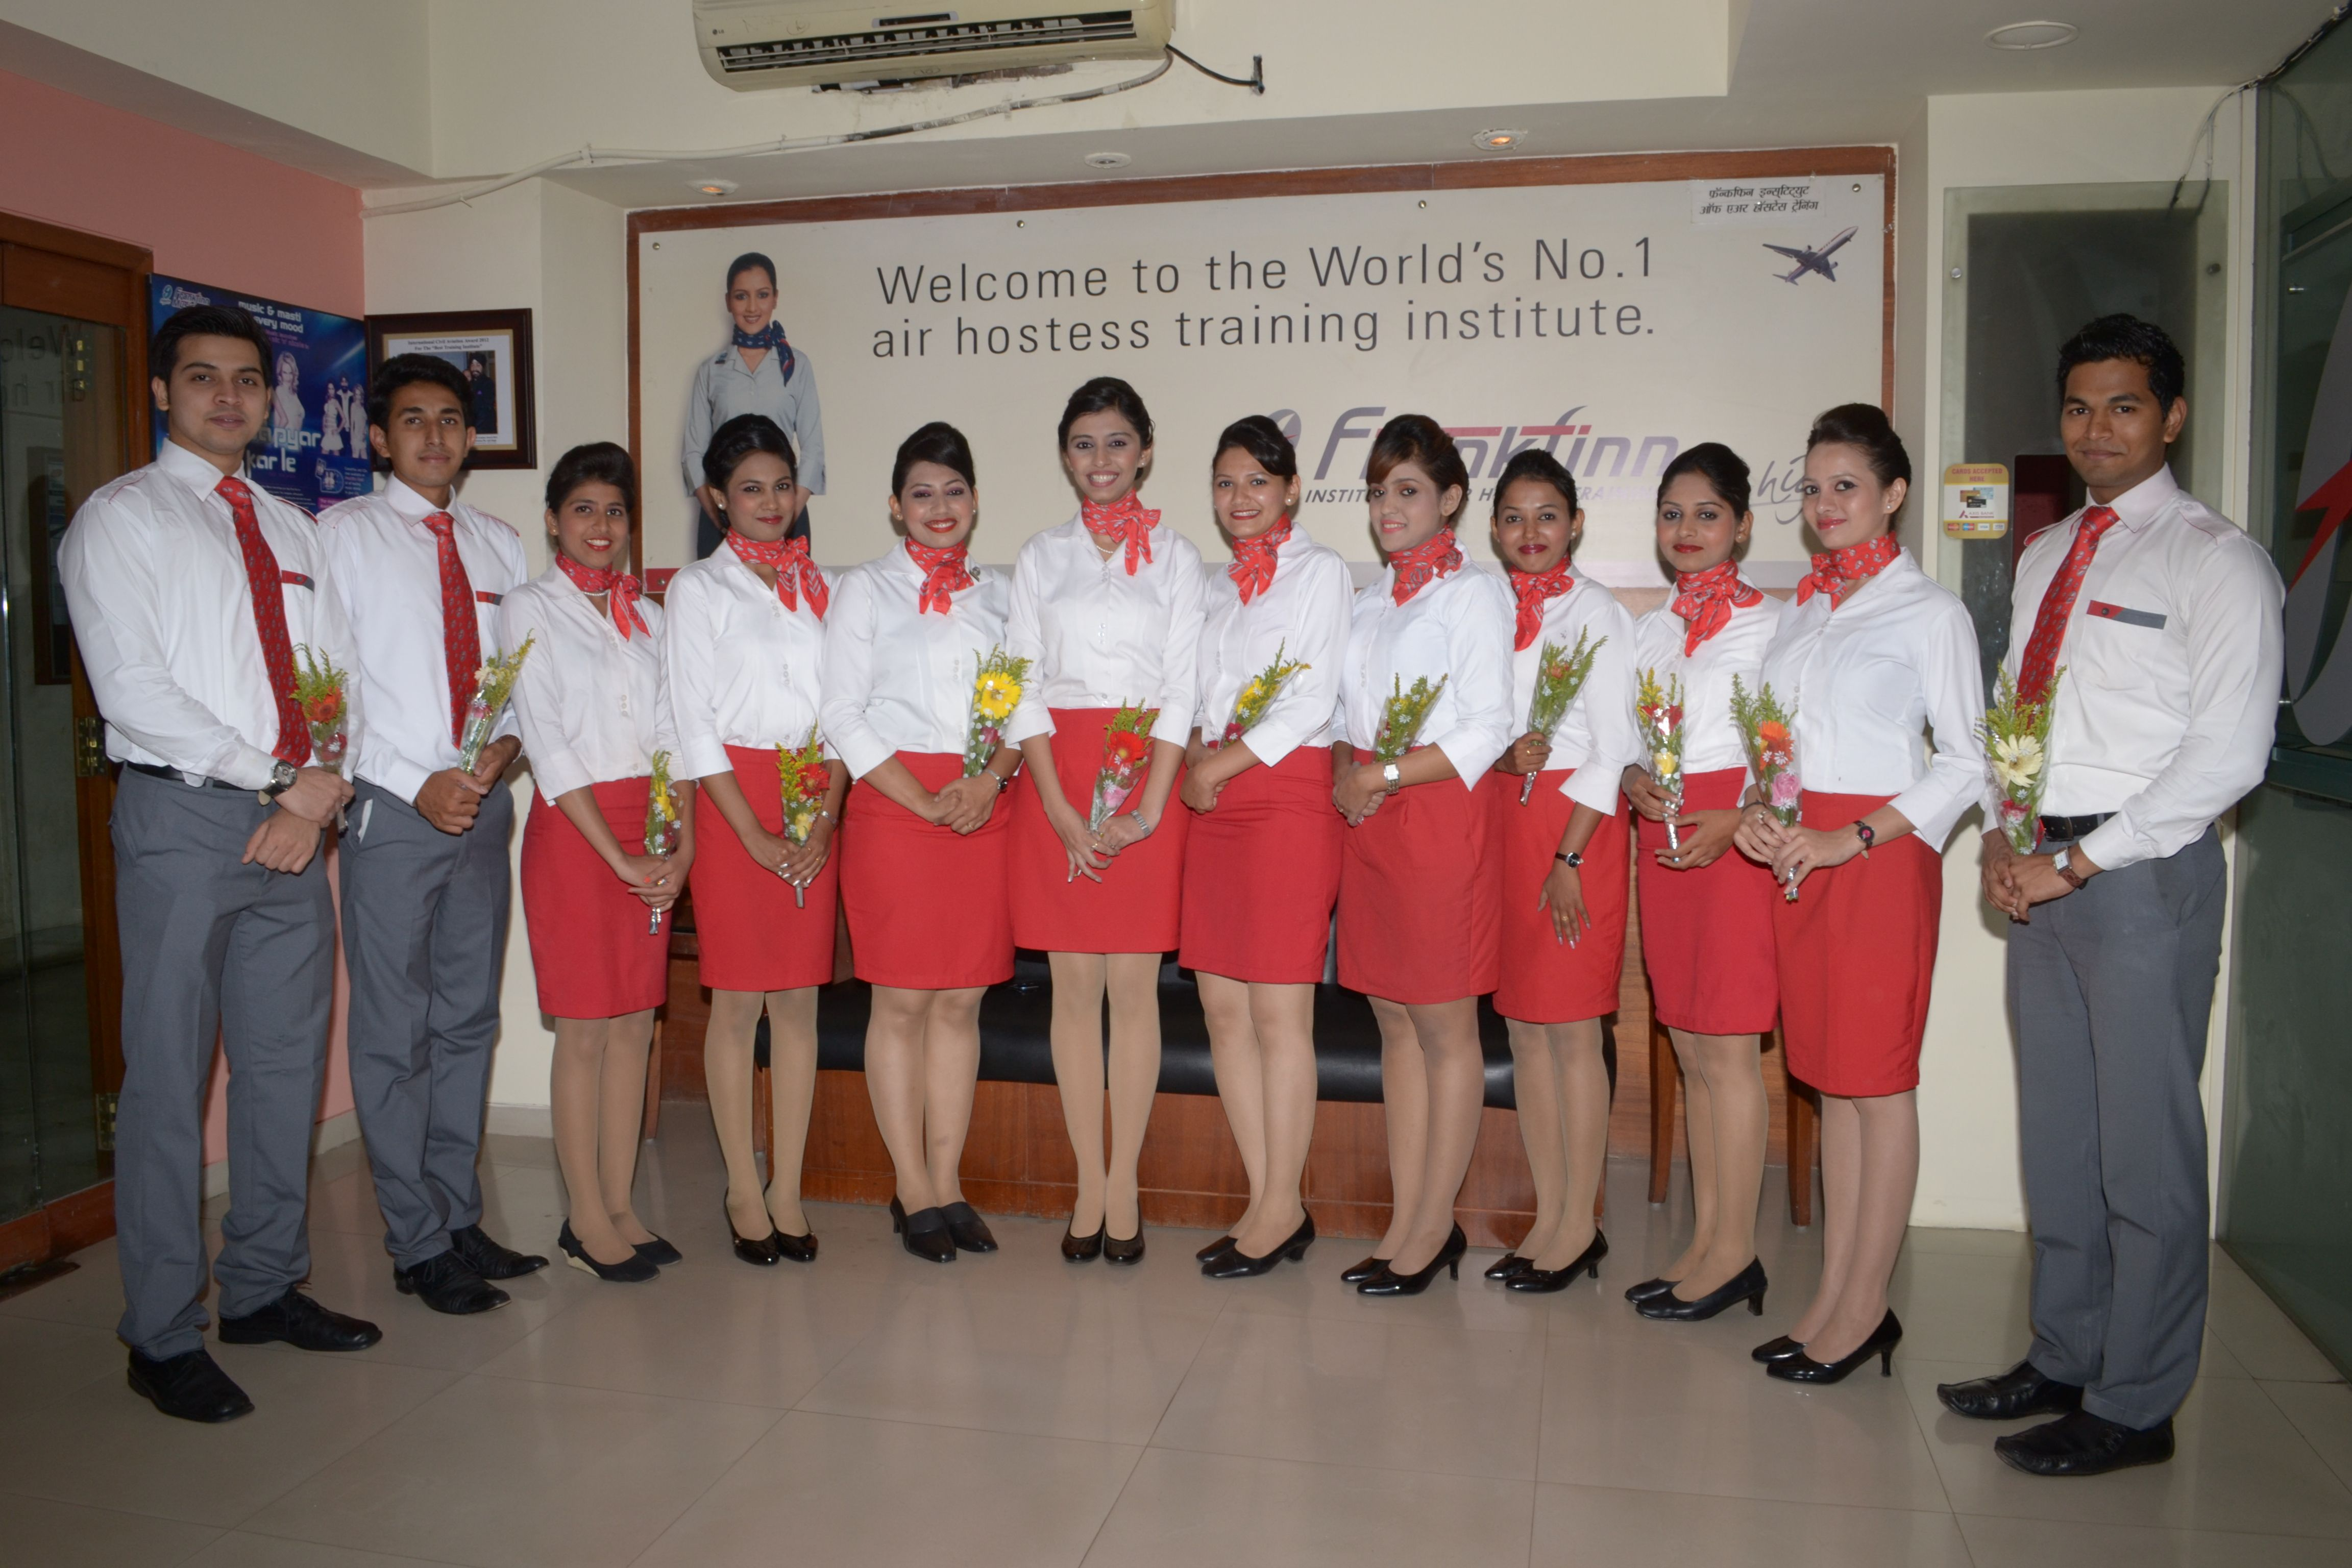 Frankfinn Institute Of Air Hostess Training Is Booked For Group